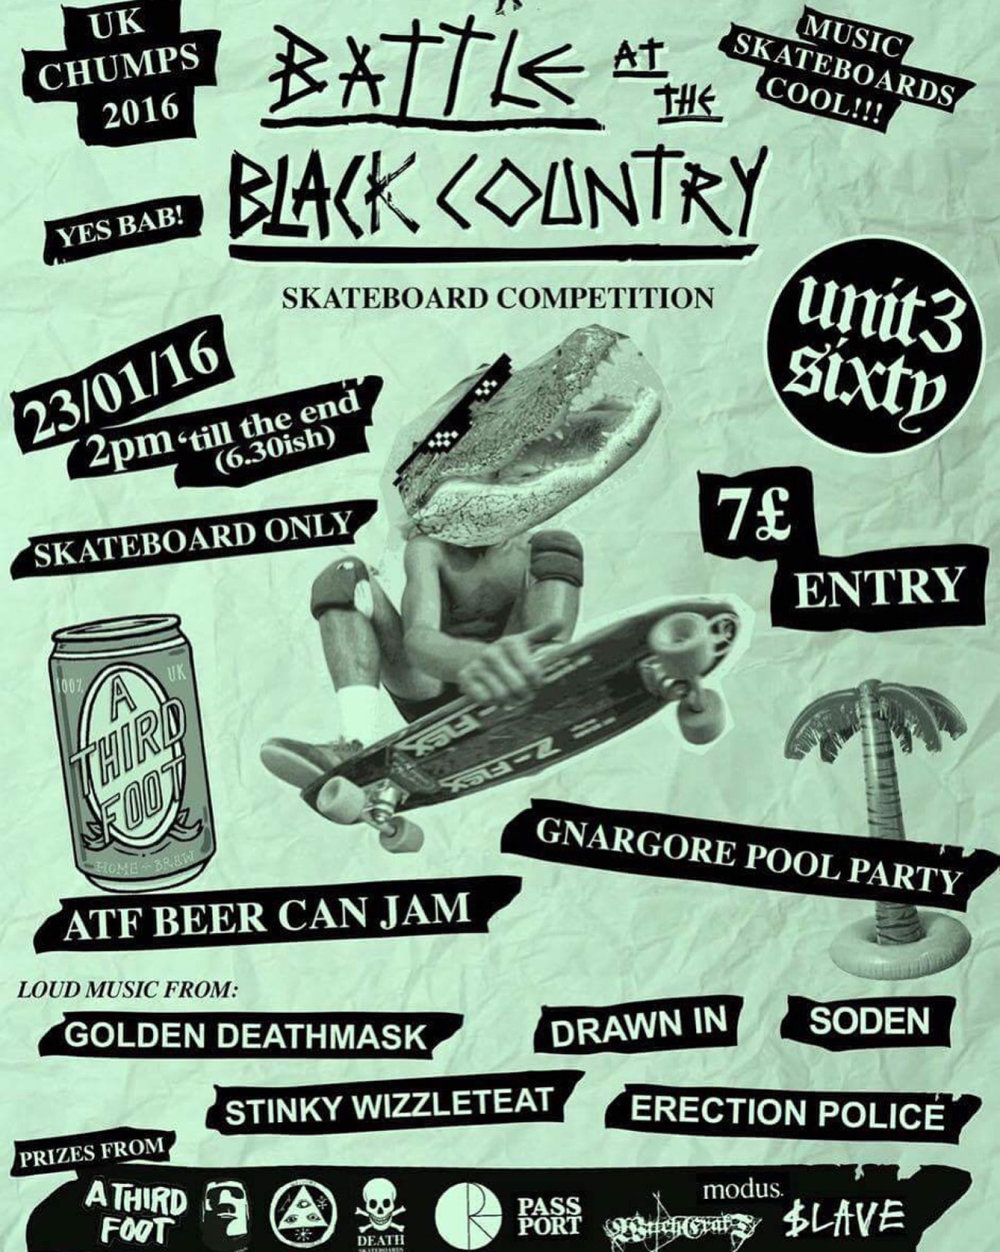 Battle At The Black Country G.D.M / Drawn In 23.1.16